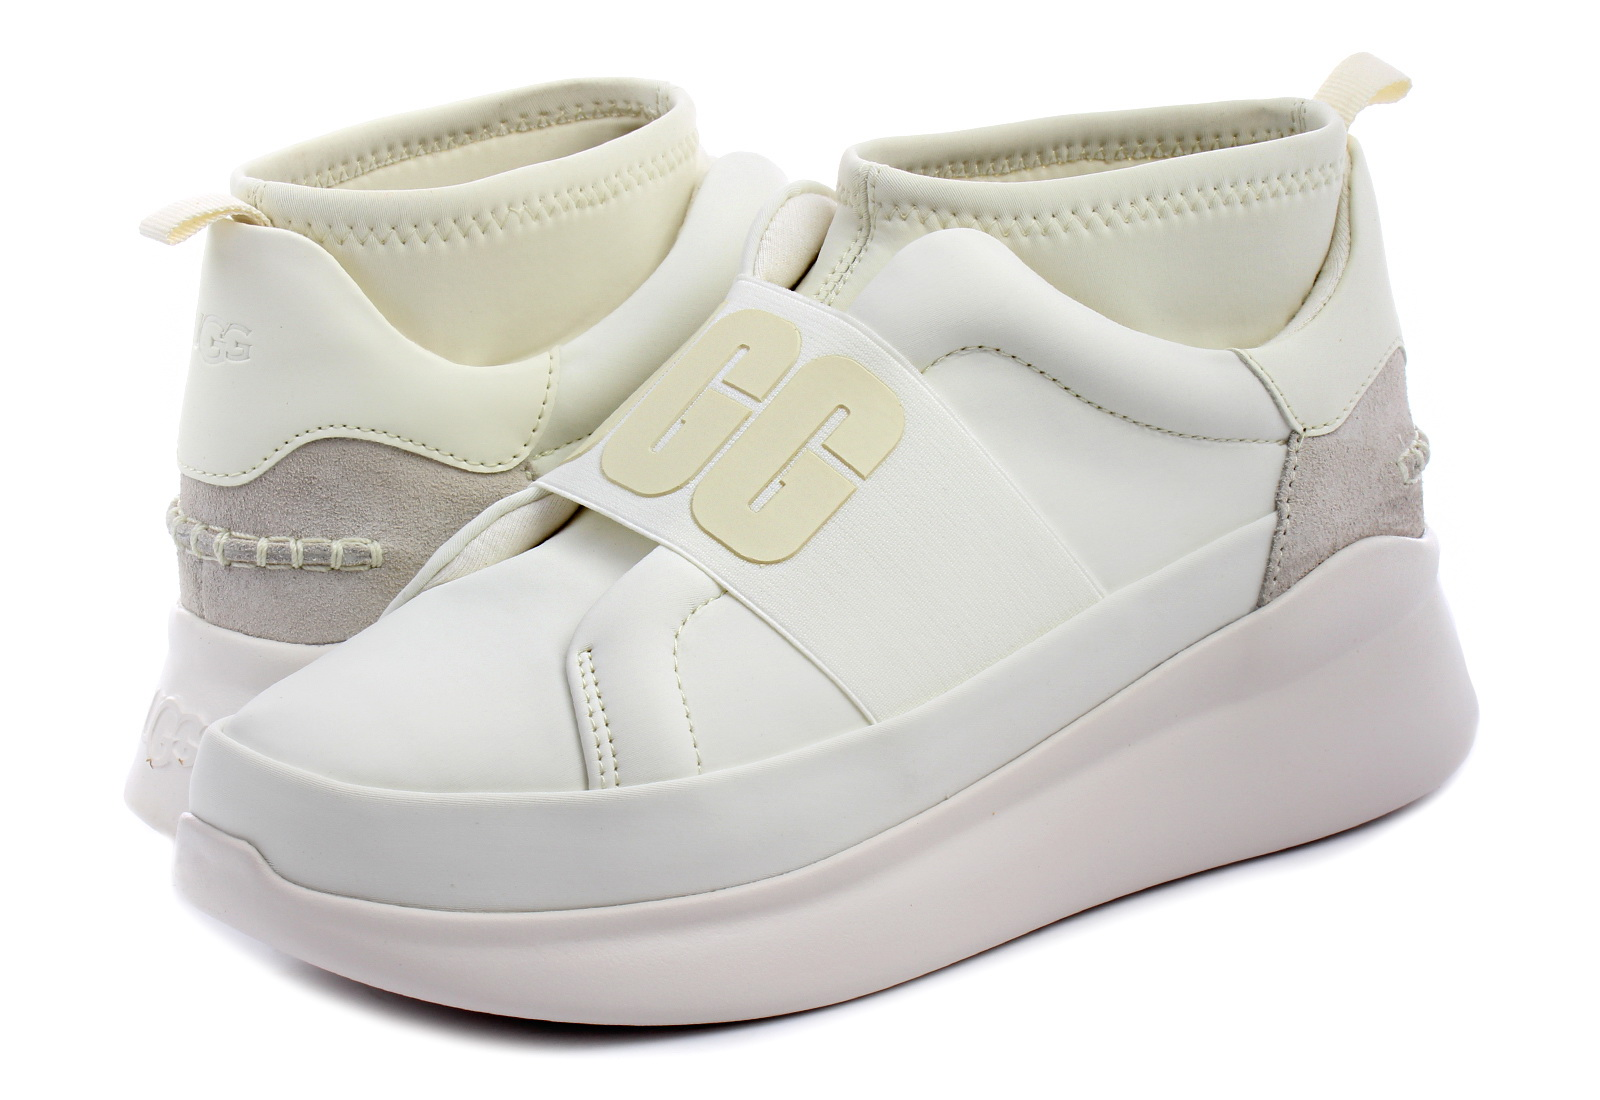 Ugg Shoes - Neutra Sneaker - 1095097